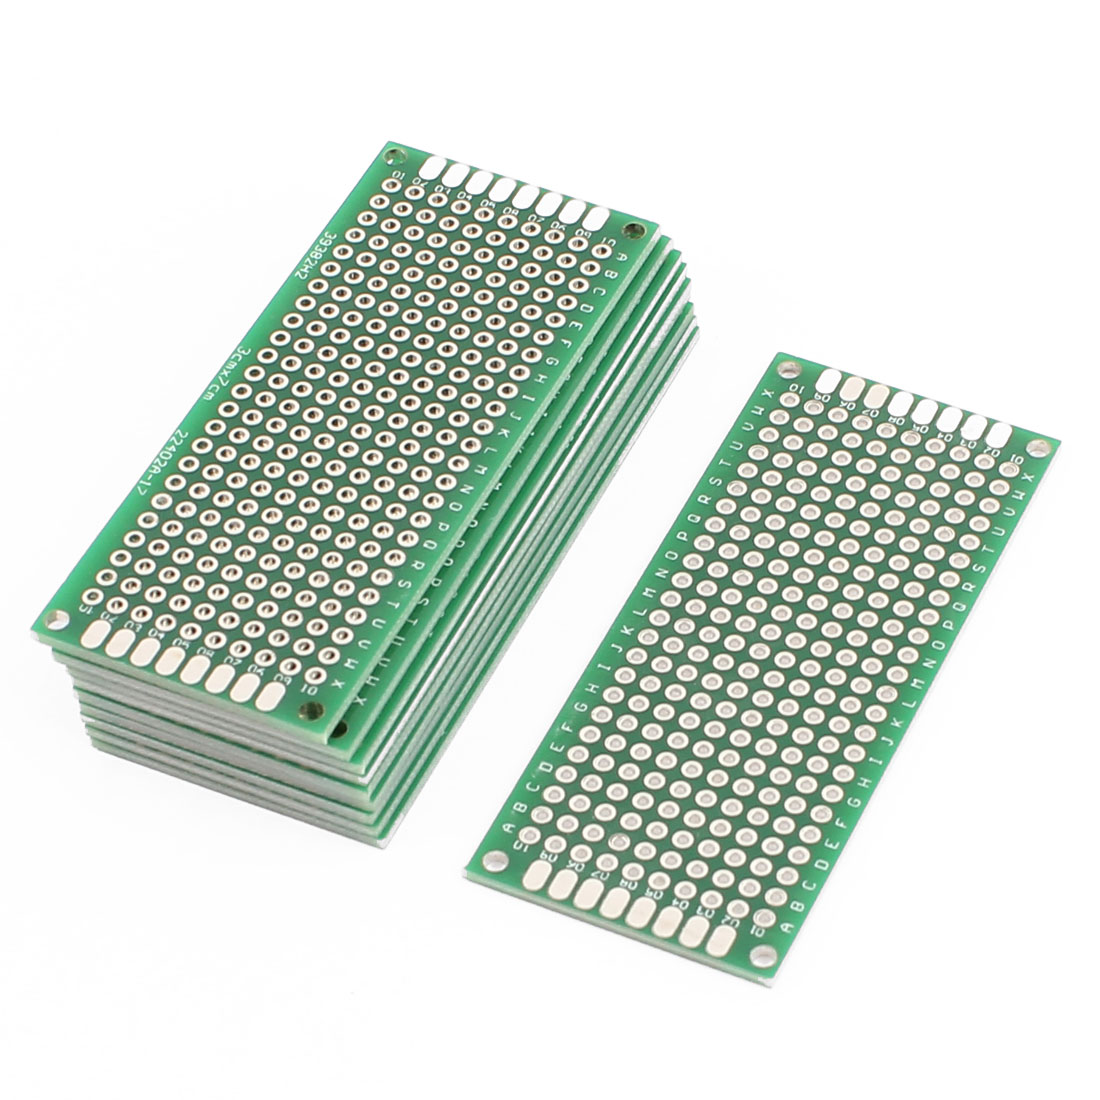 10 Pcs 3 x 7cm Double-Side Prototype Solderable Paper Universal PCB Board